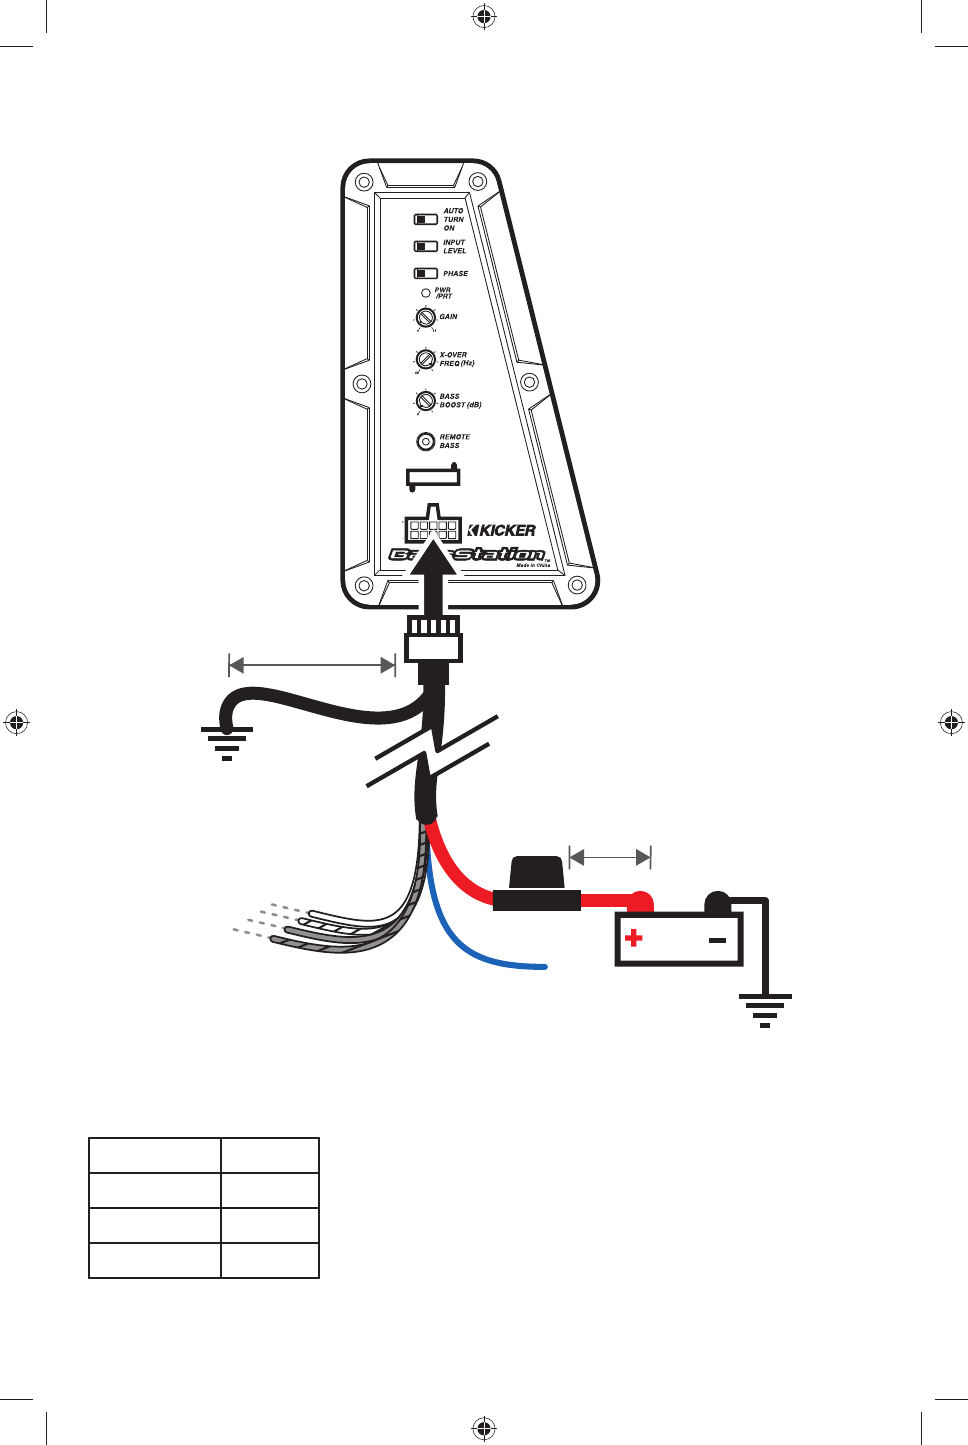 Kicker Comp Vr Wiring Diagram For Your Needs